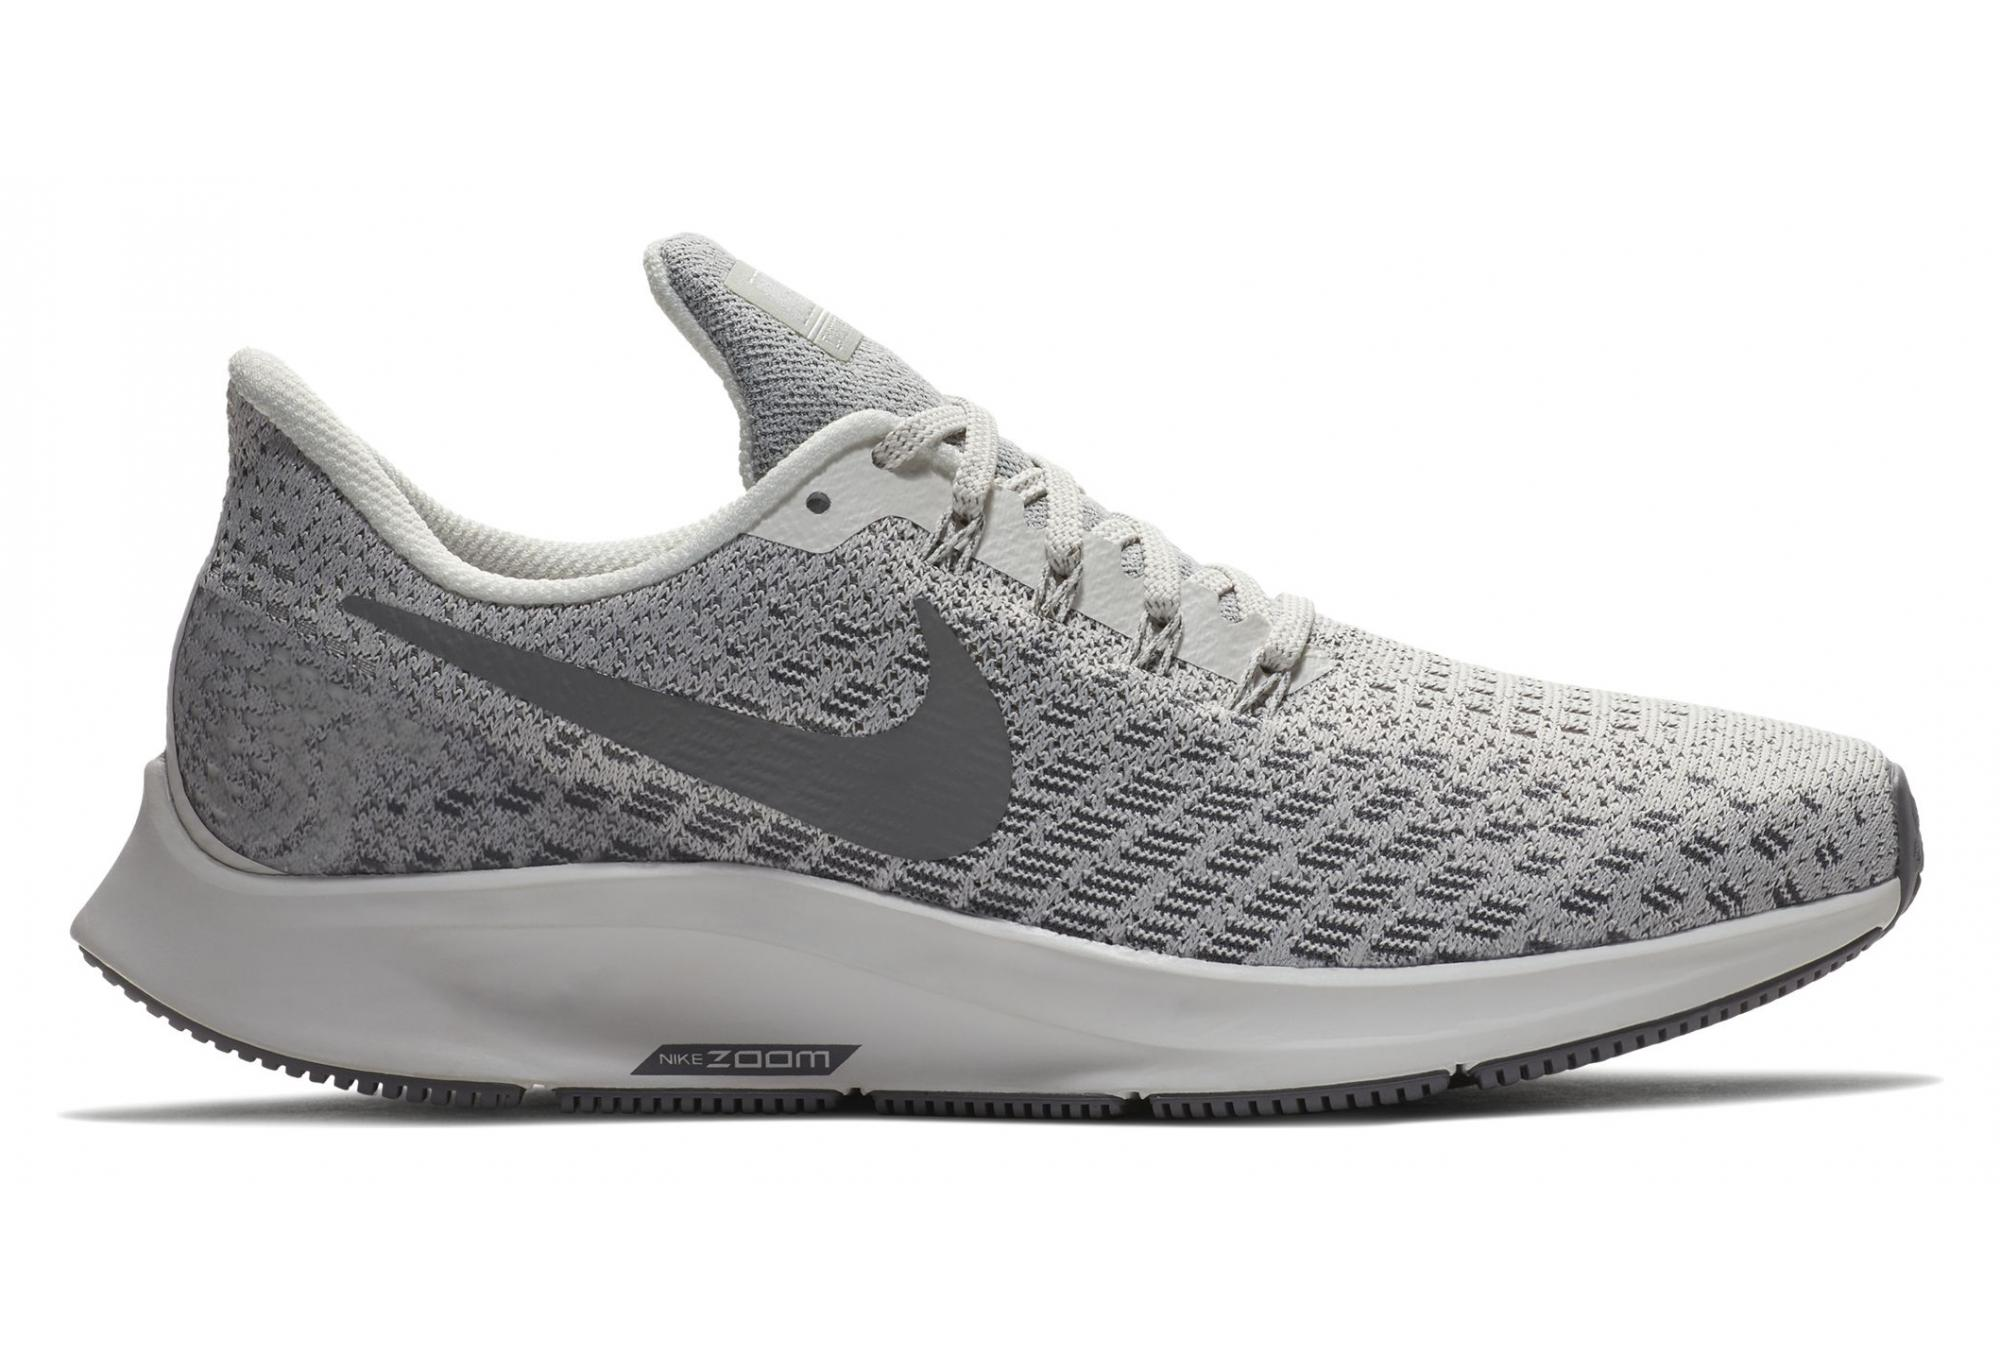 unique design most popular where can i buy Chaussures de Running Femme Nike Air Zoom Pegasus 35 Gris ...